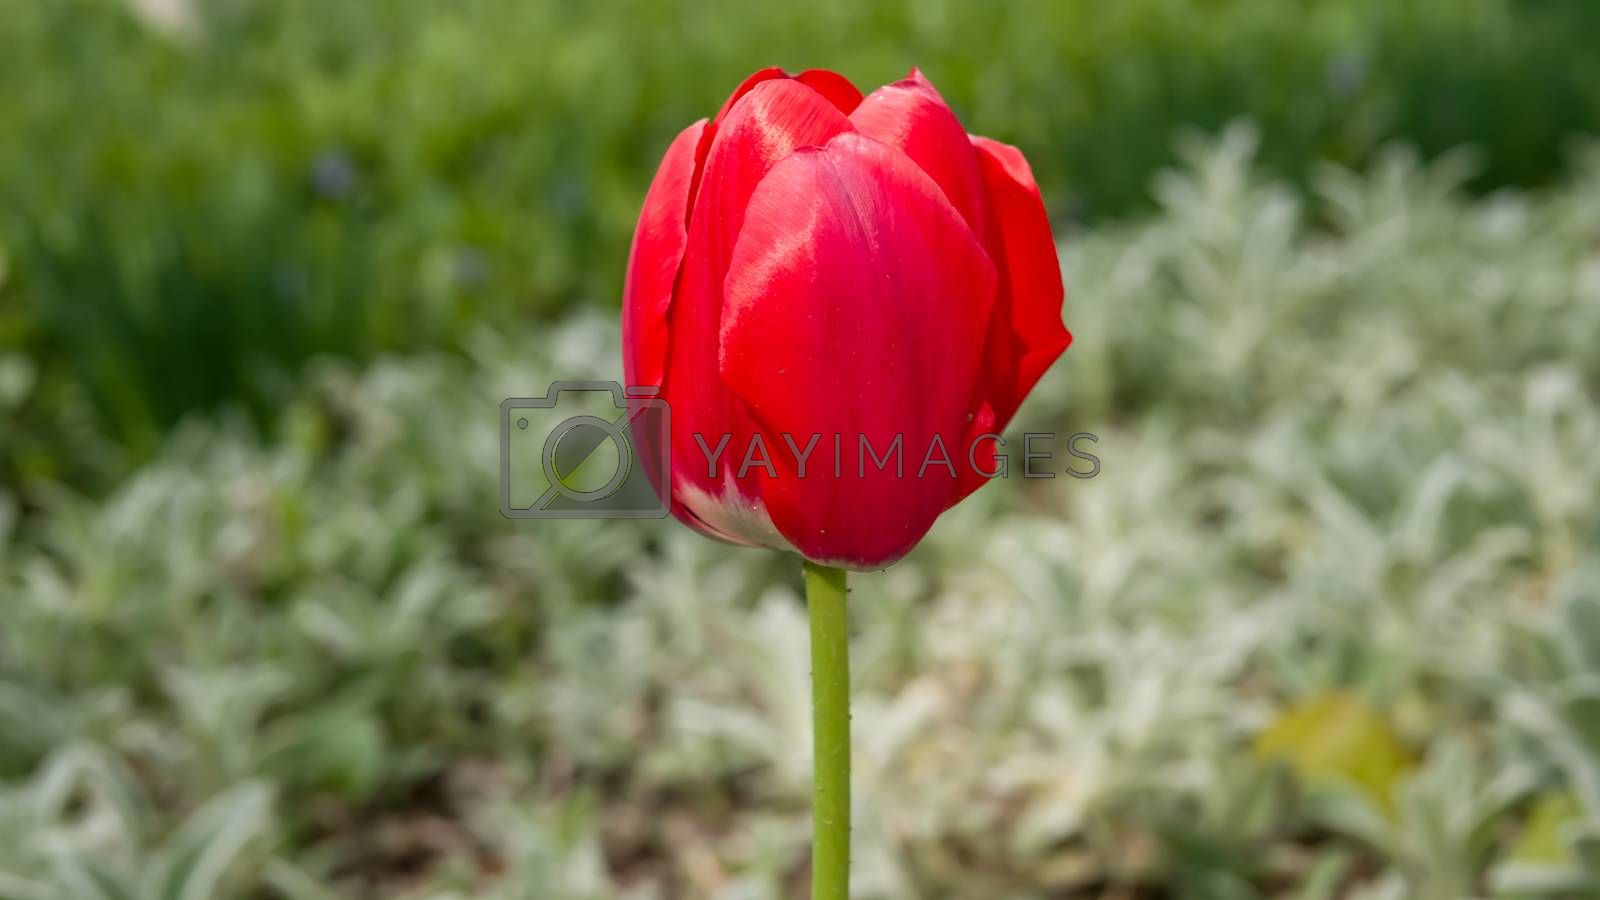 Tulip is a perennial flowering plant